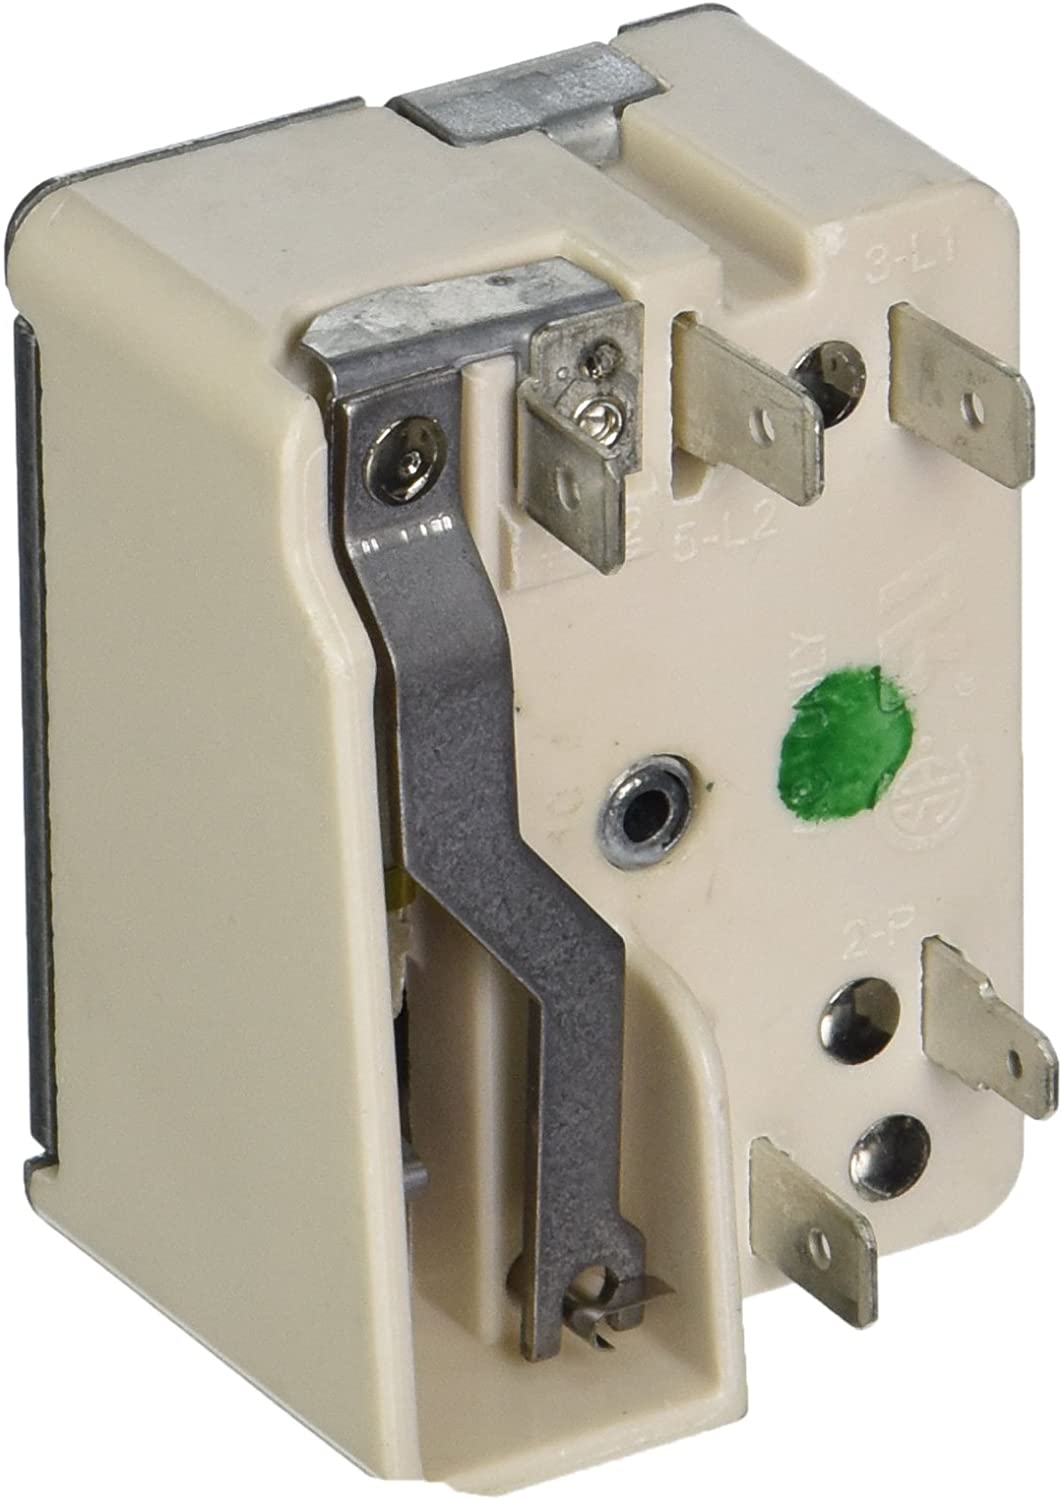 General Electric WB23M23 Surface Element Switch